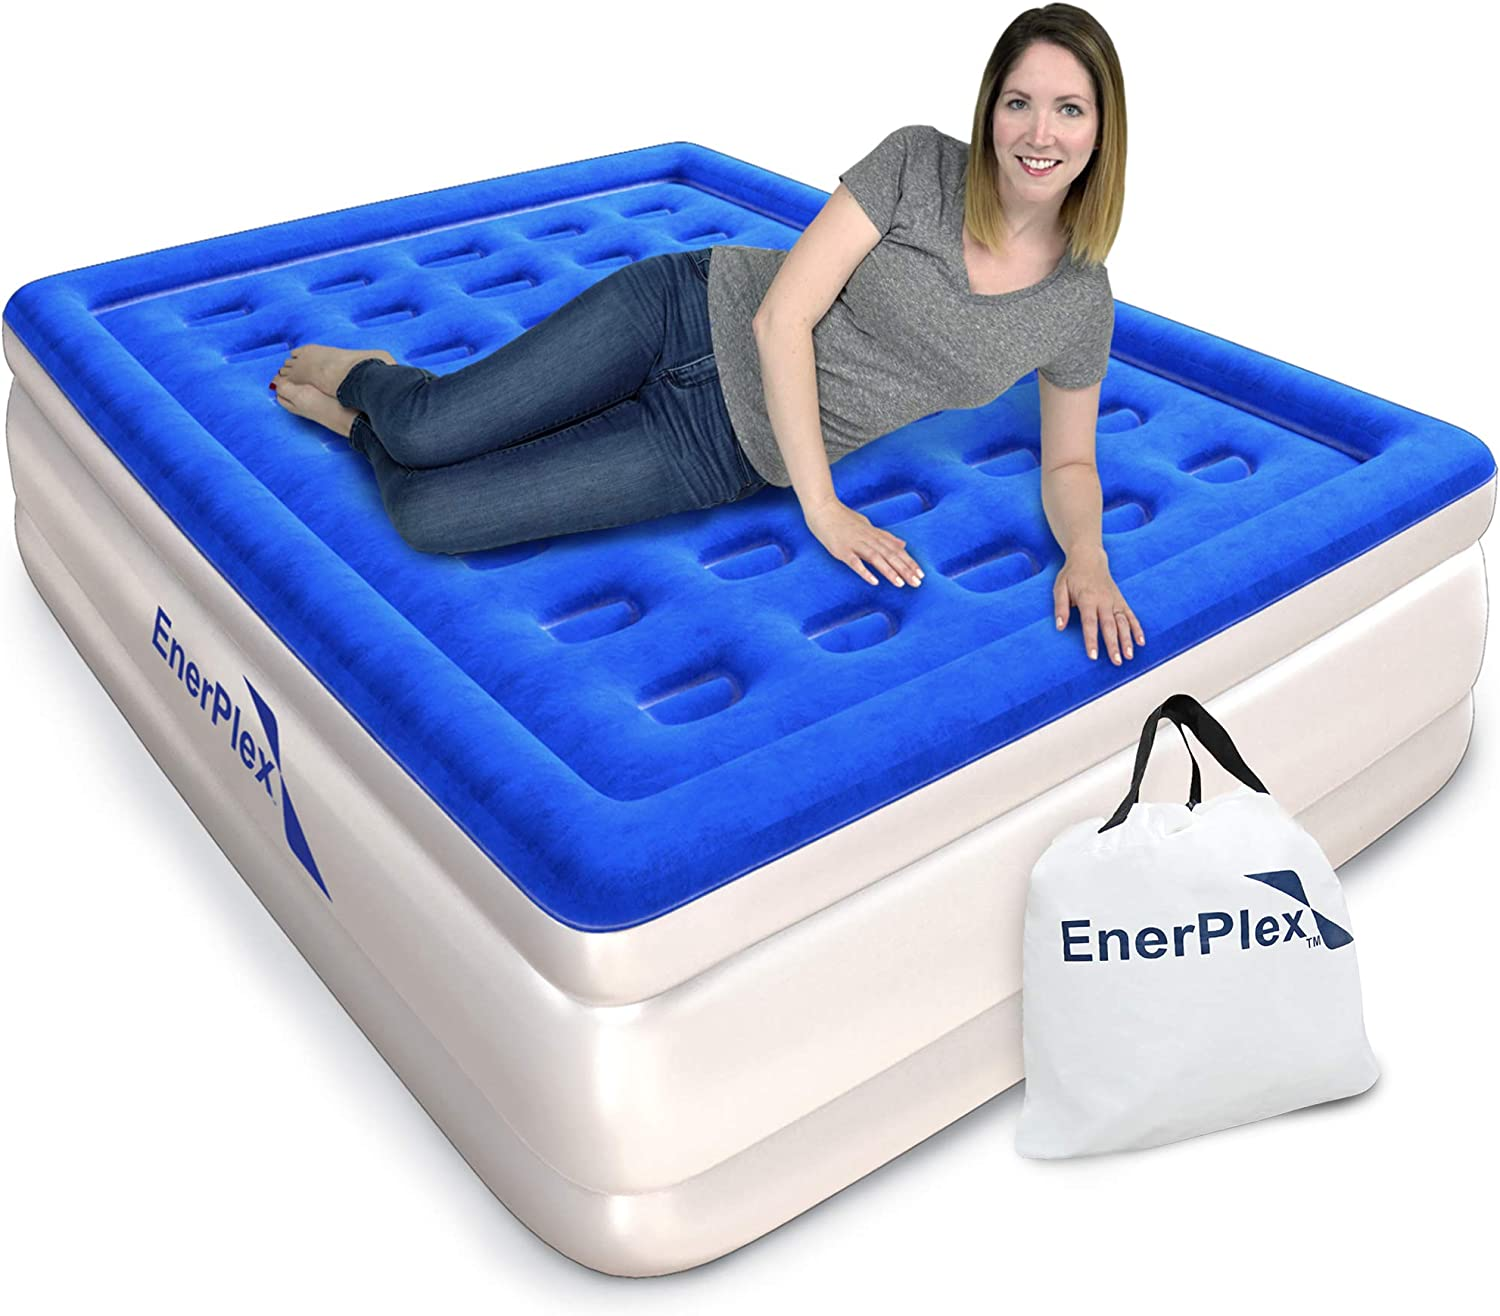 EnerPlex Never-Leak Queen Air Mattress with Built in Pump Raised Luxury Airbed Double High Queen Inflatable Bed Blow Up Bed 2-Year Warranty Manufacturer: Kitchen & Dining